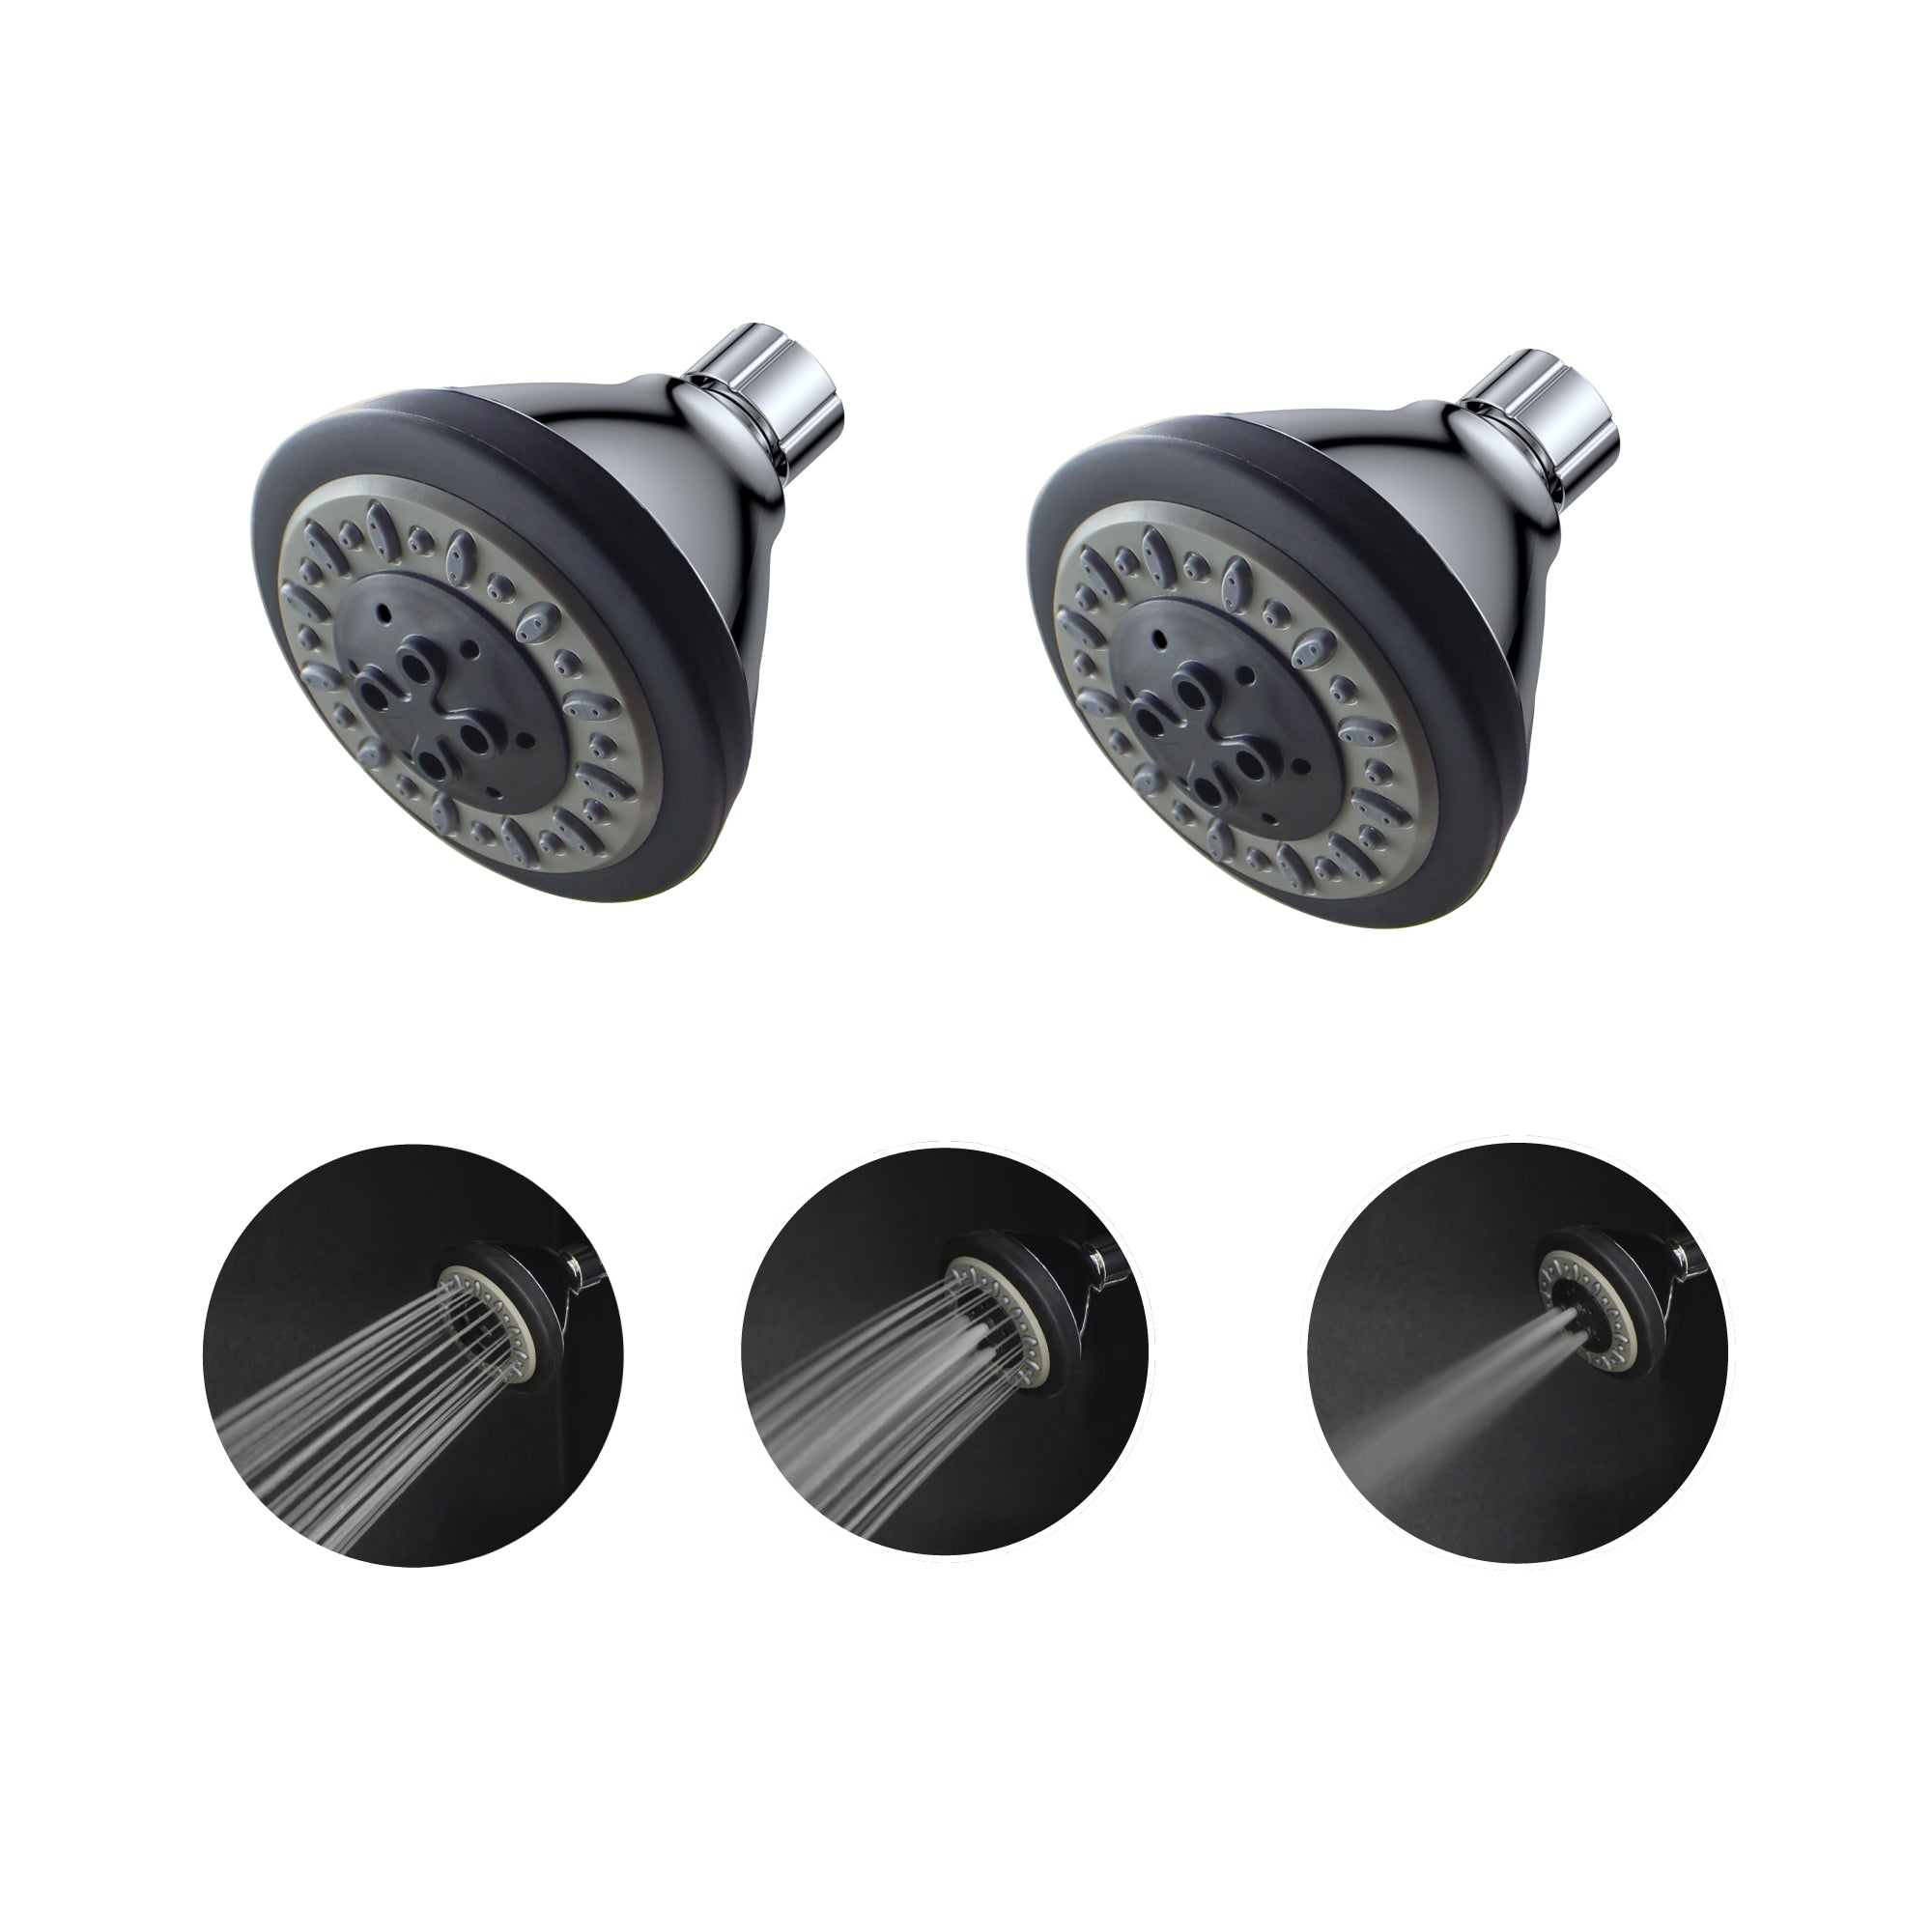 Eco365 3 Function shower heads pack of 2